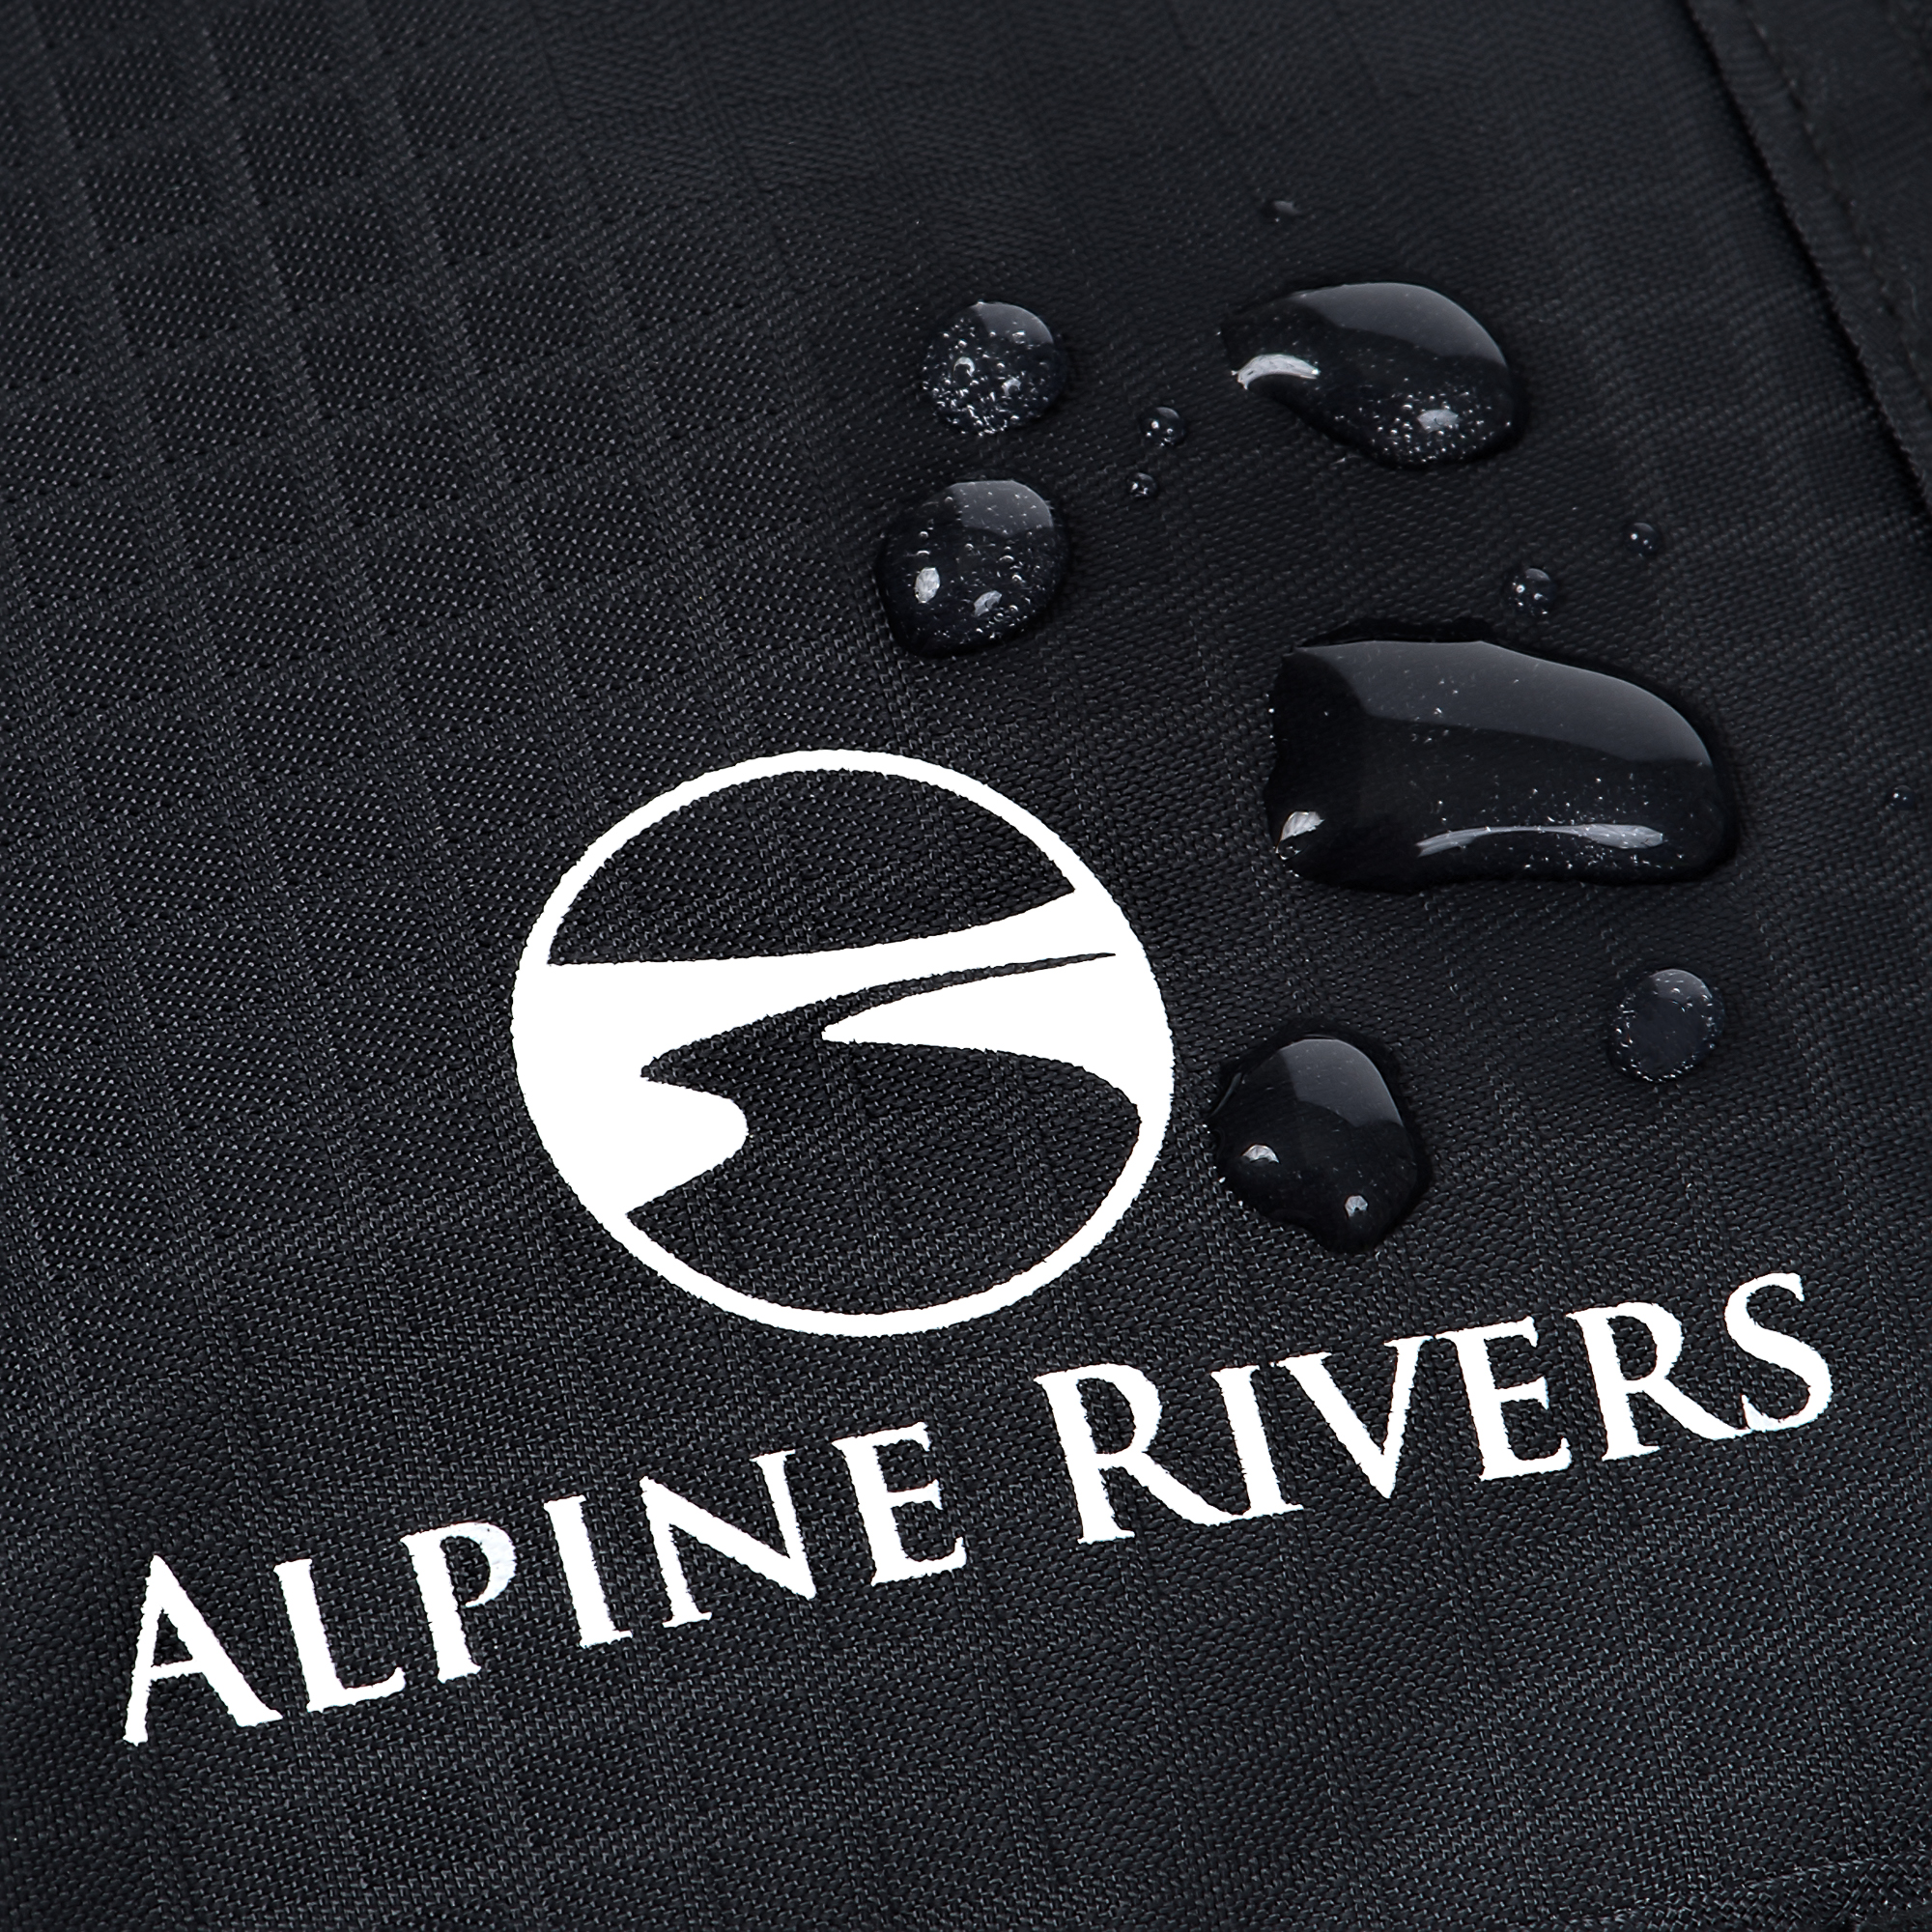 Alpine Rivers Water Resistant